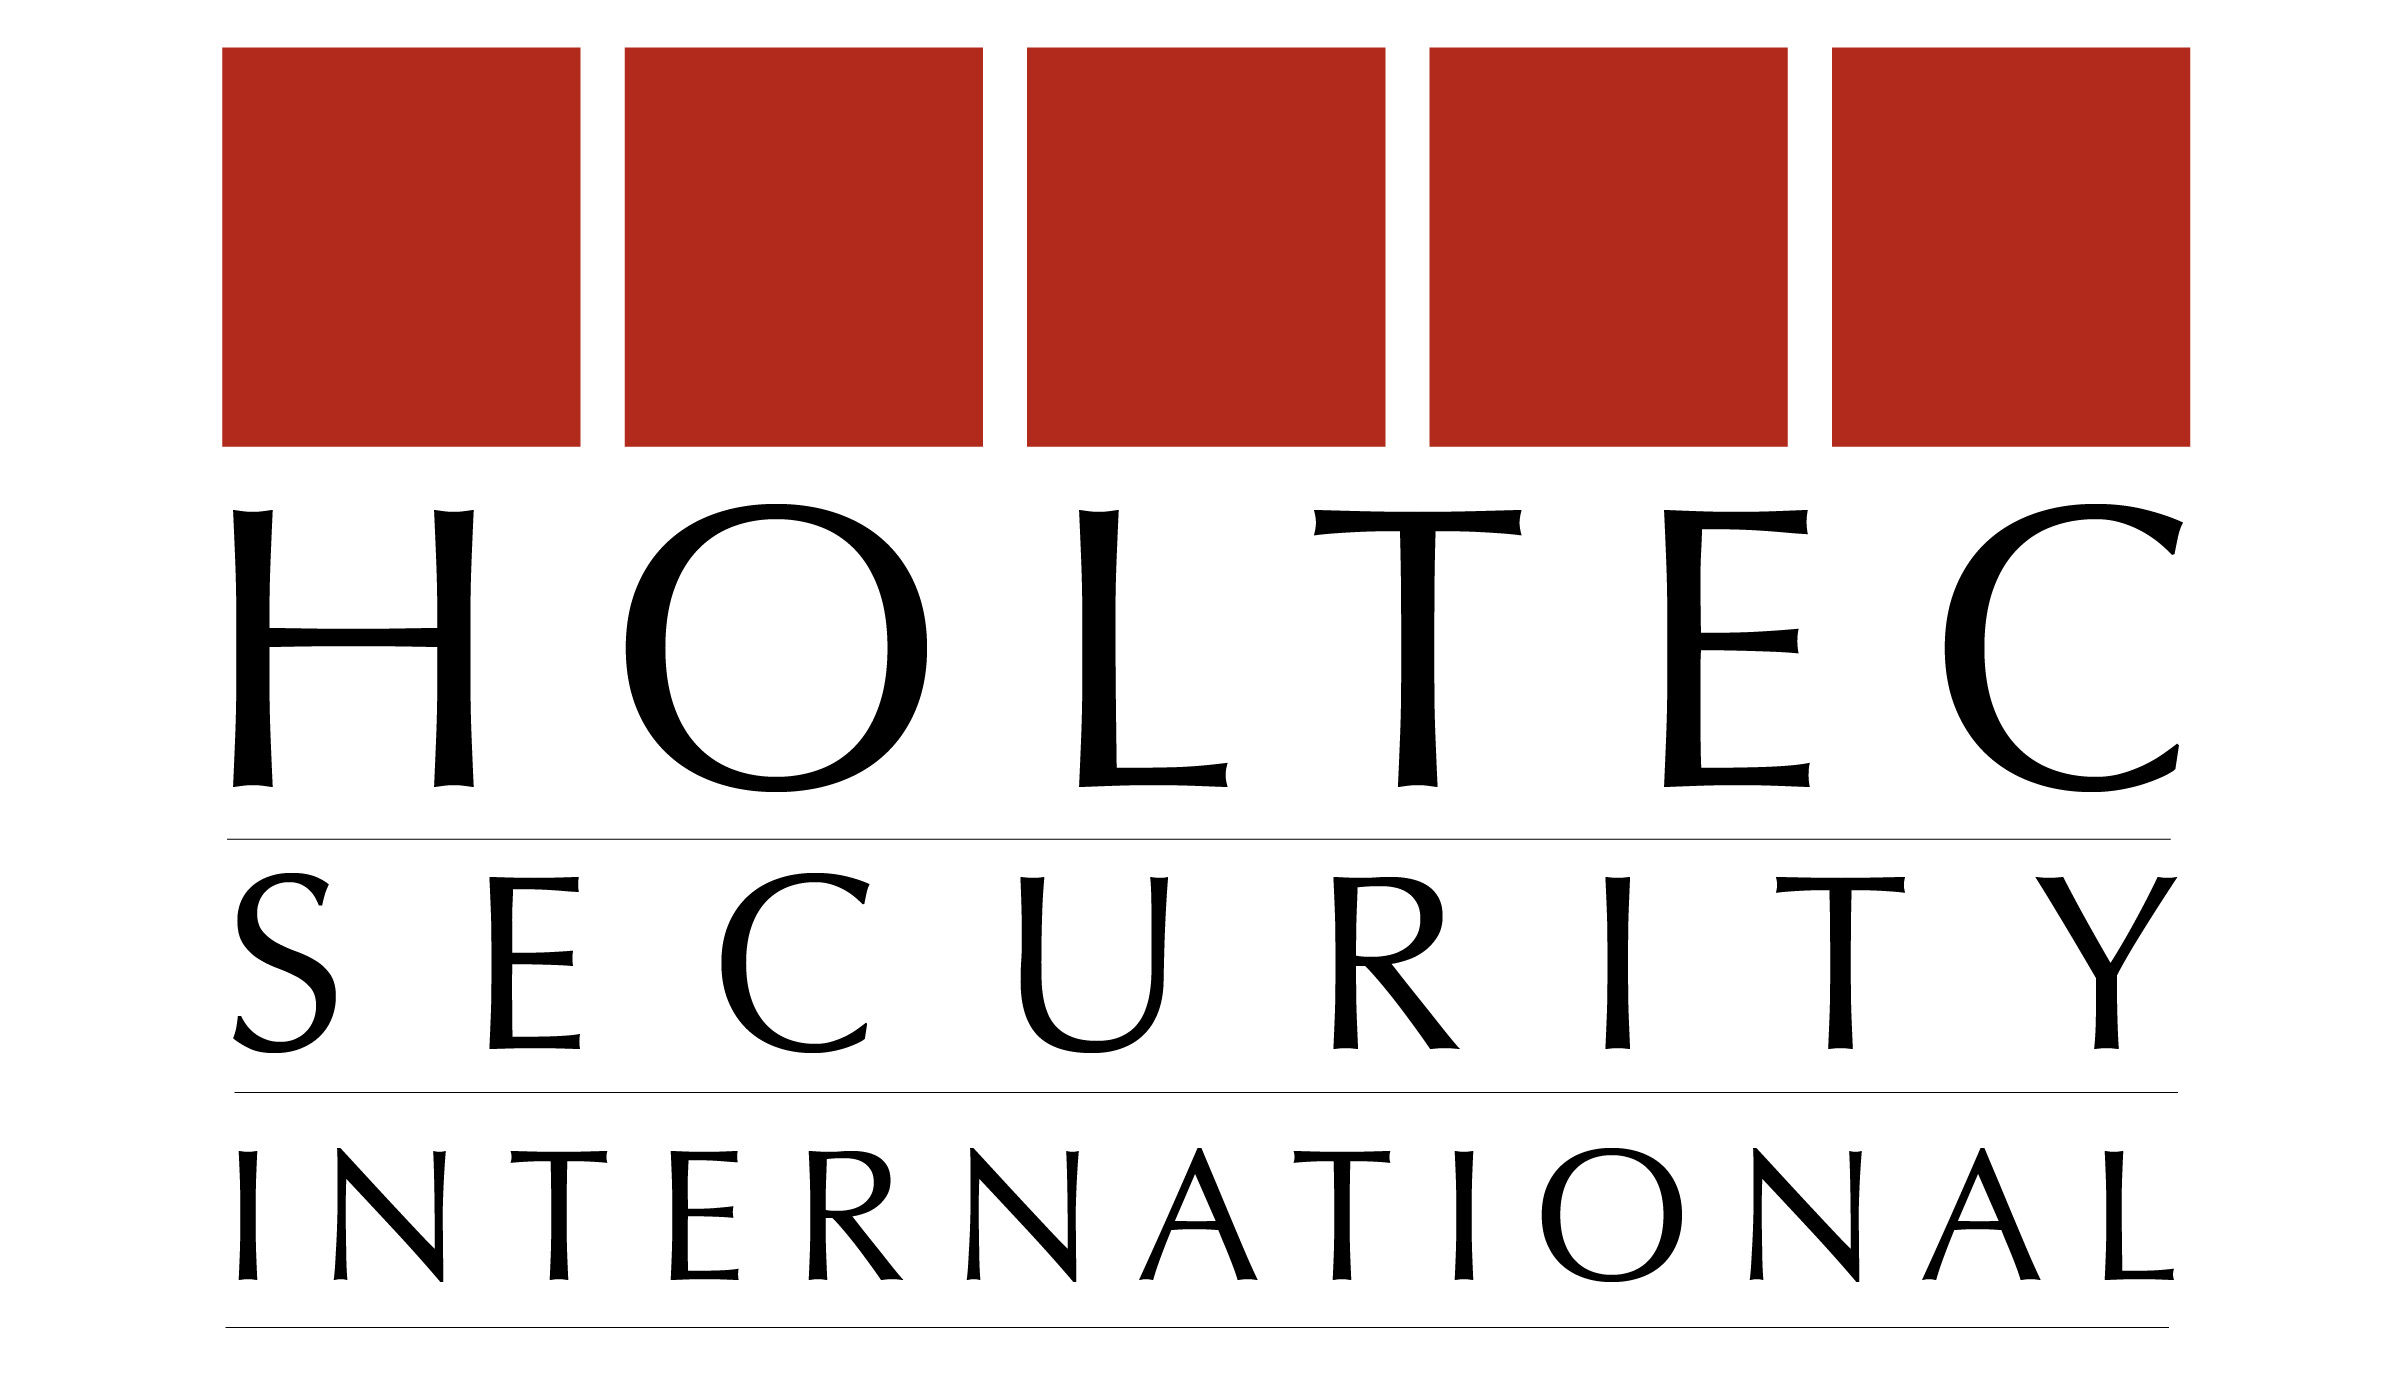 Holtec Security International